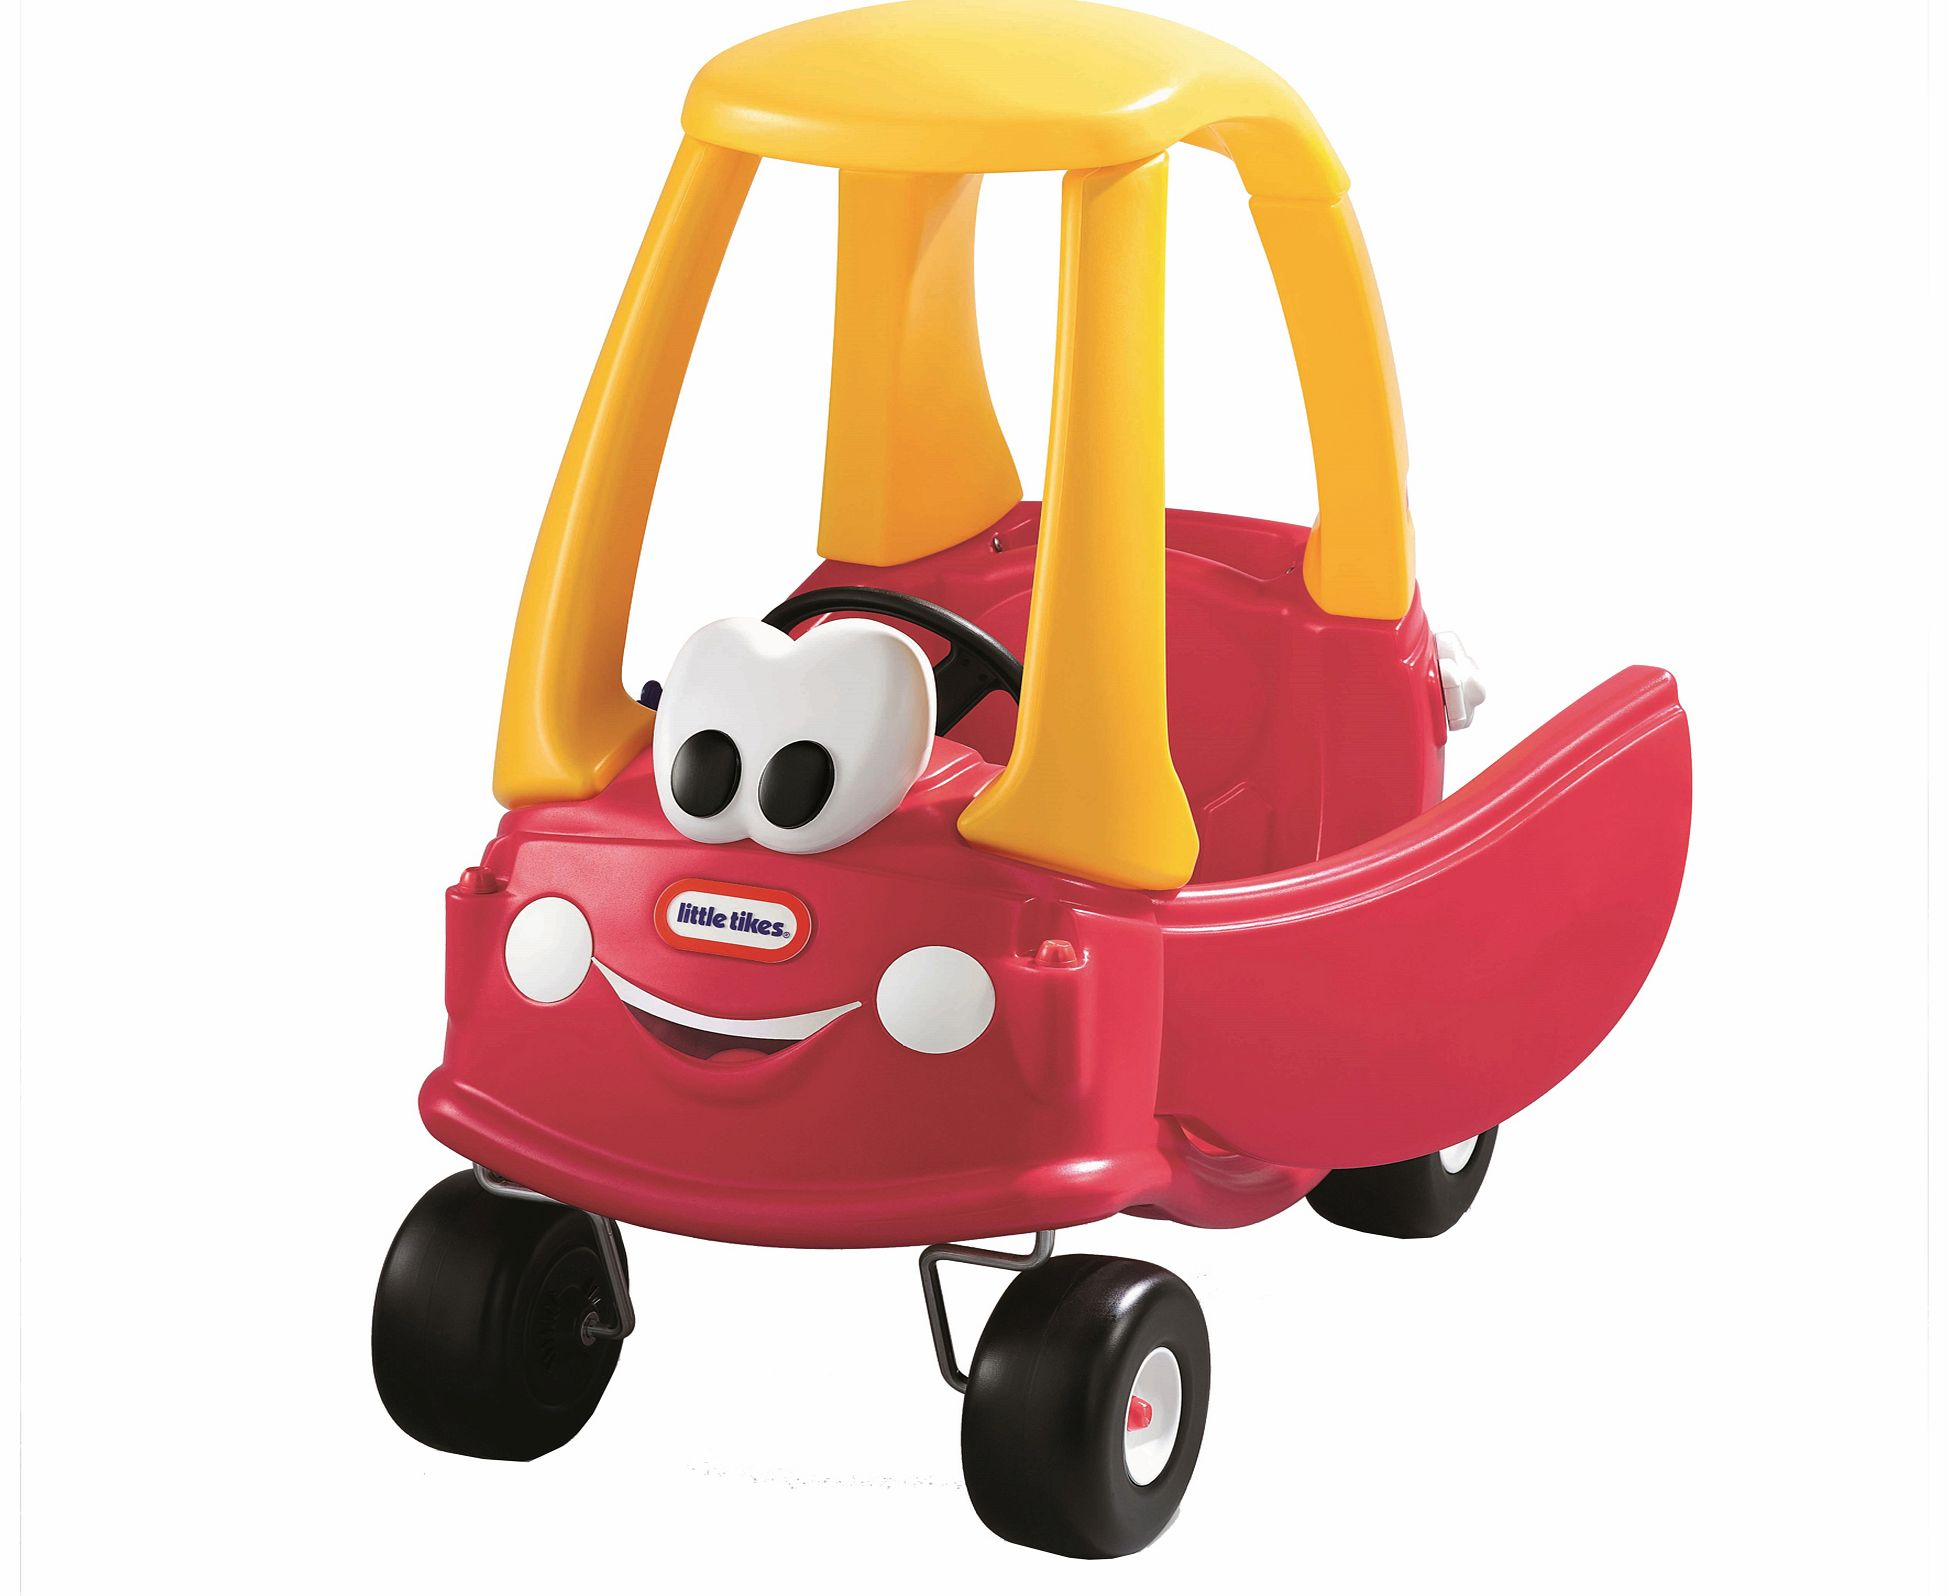 Little tikes cozy coupe police little tikes cozy coupe - Little tikes cosy coupe car best price ...